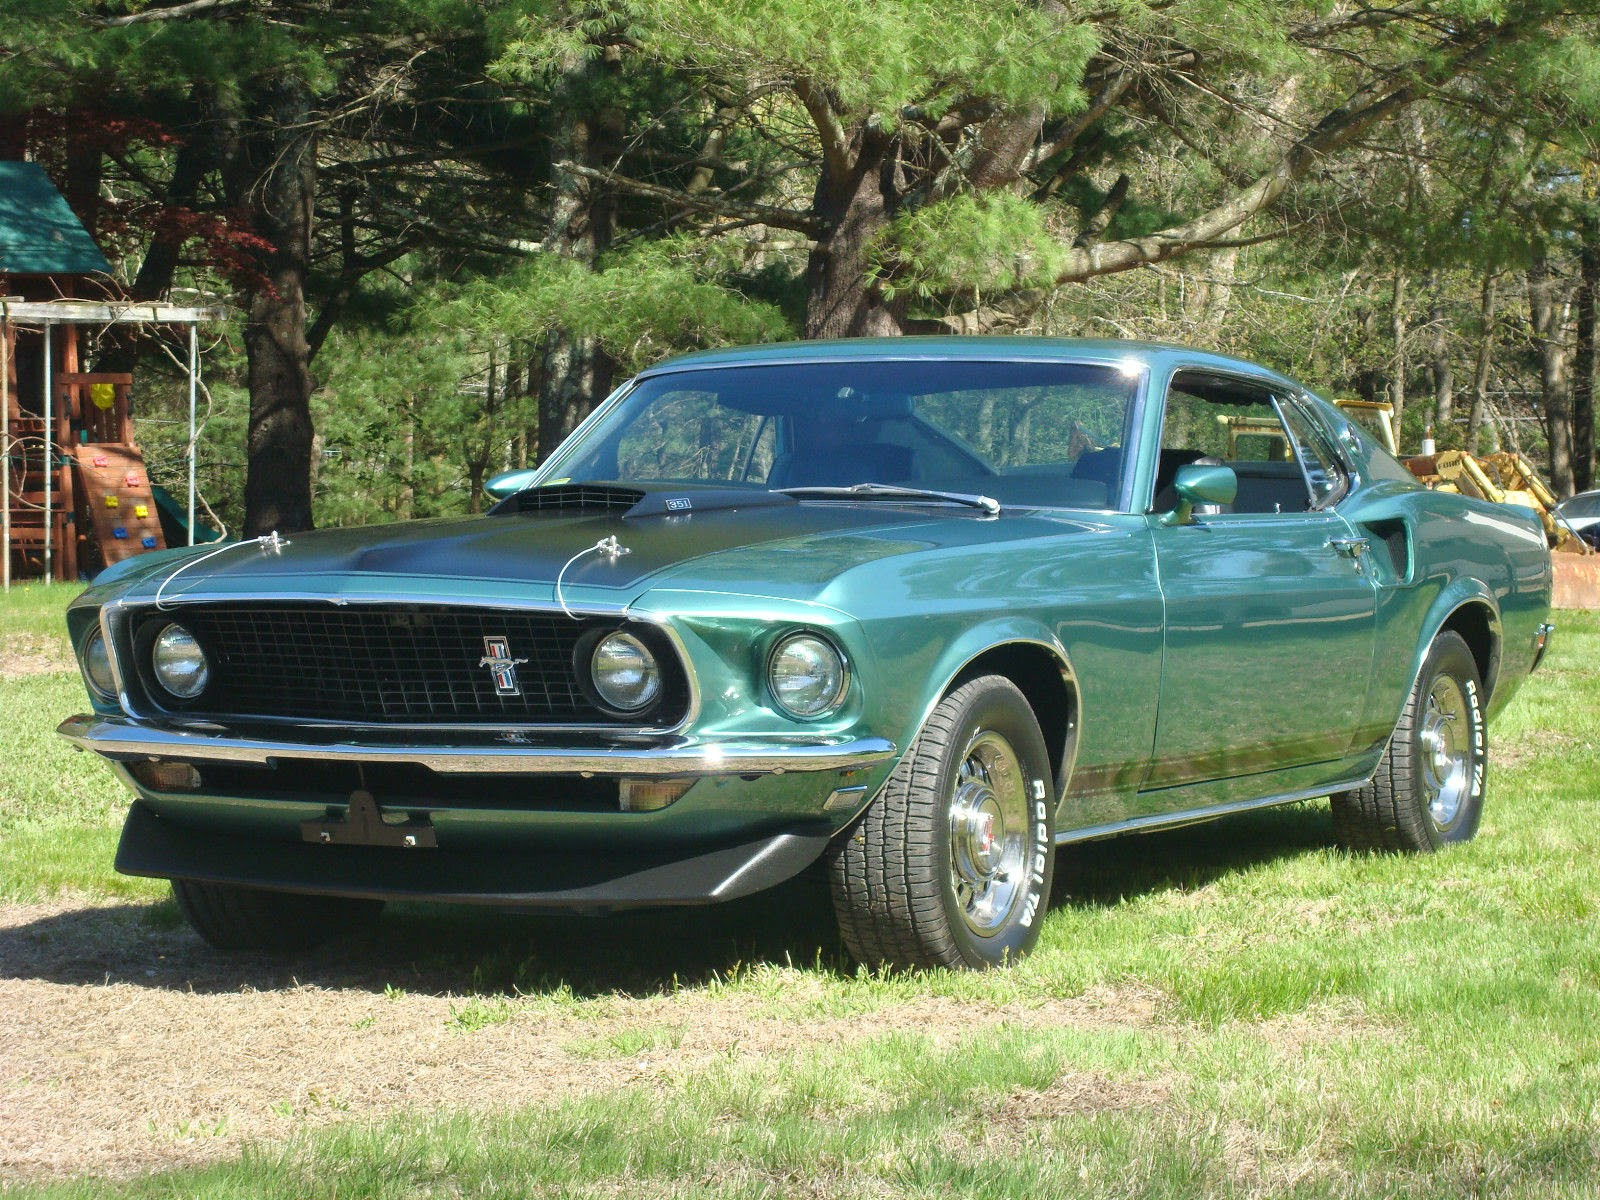 2014 05 18 For Sale American Muscle Cars 1969 Ford Mustang Hatchback Gt Fastback Rotisserie Restored